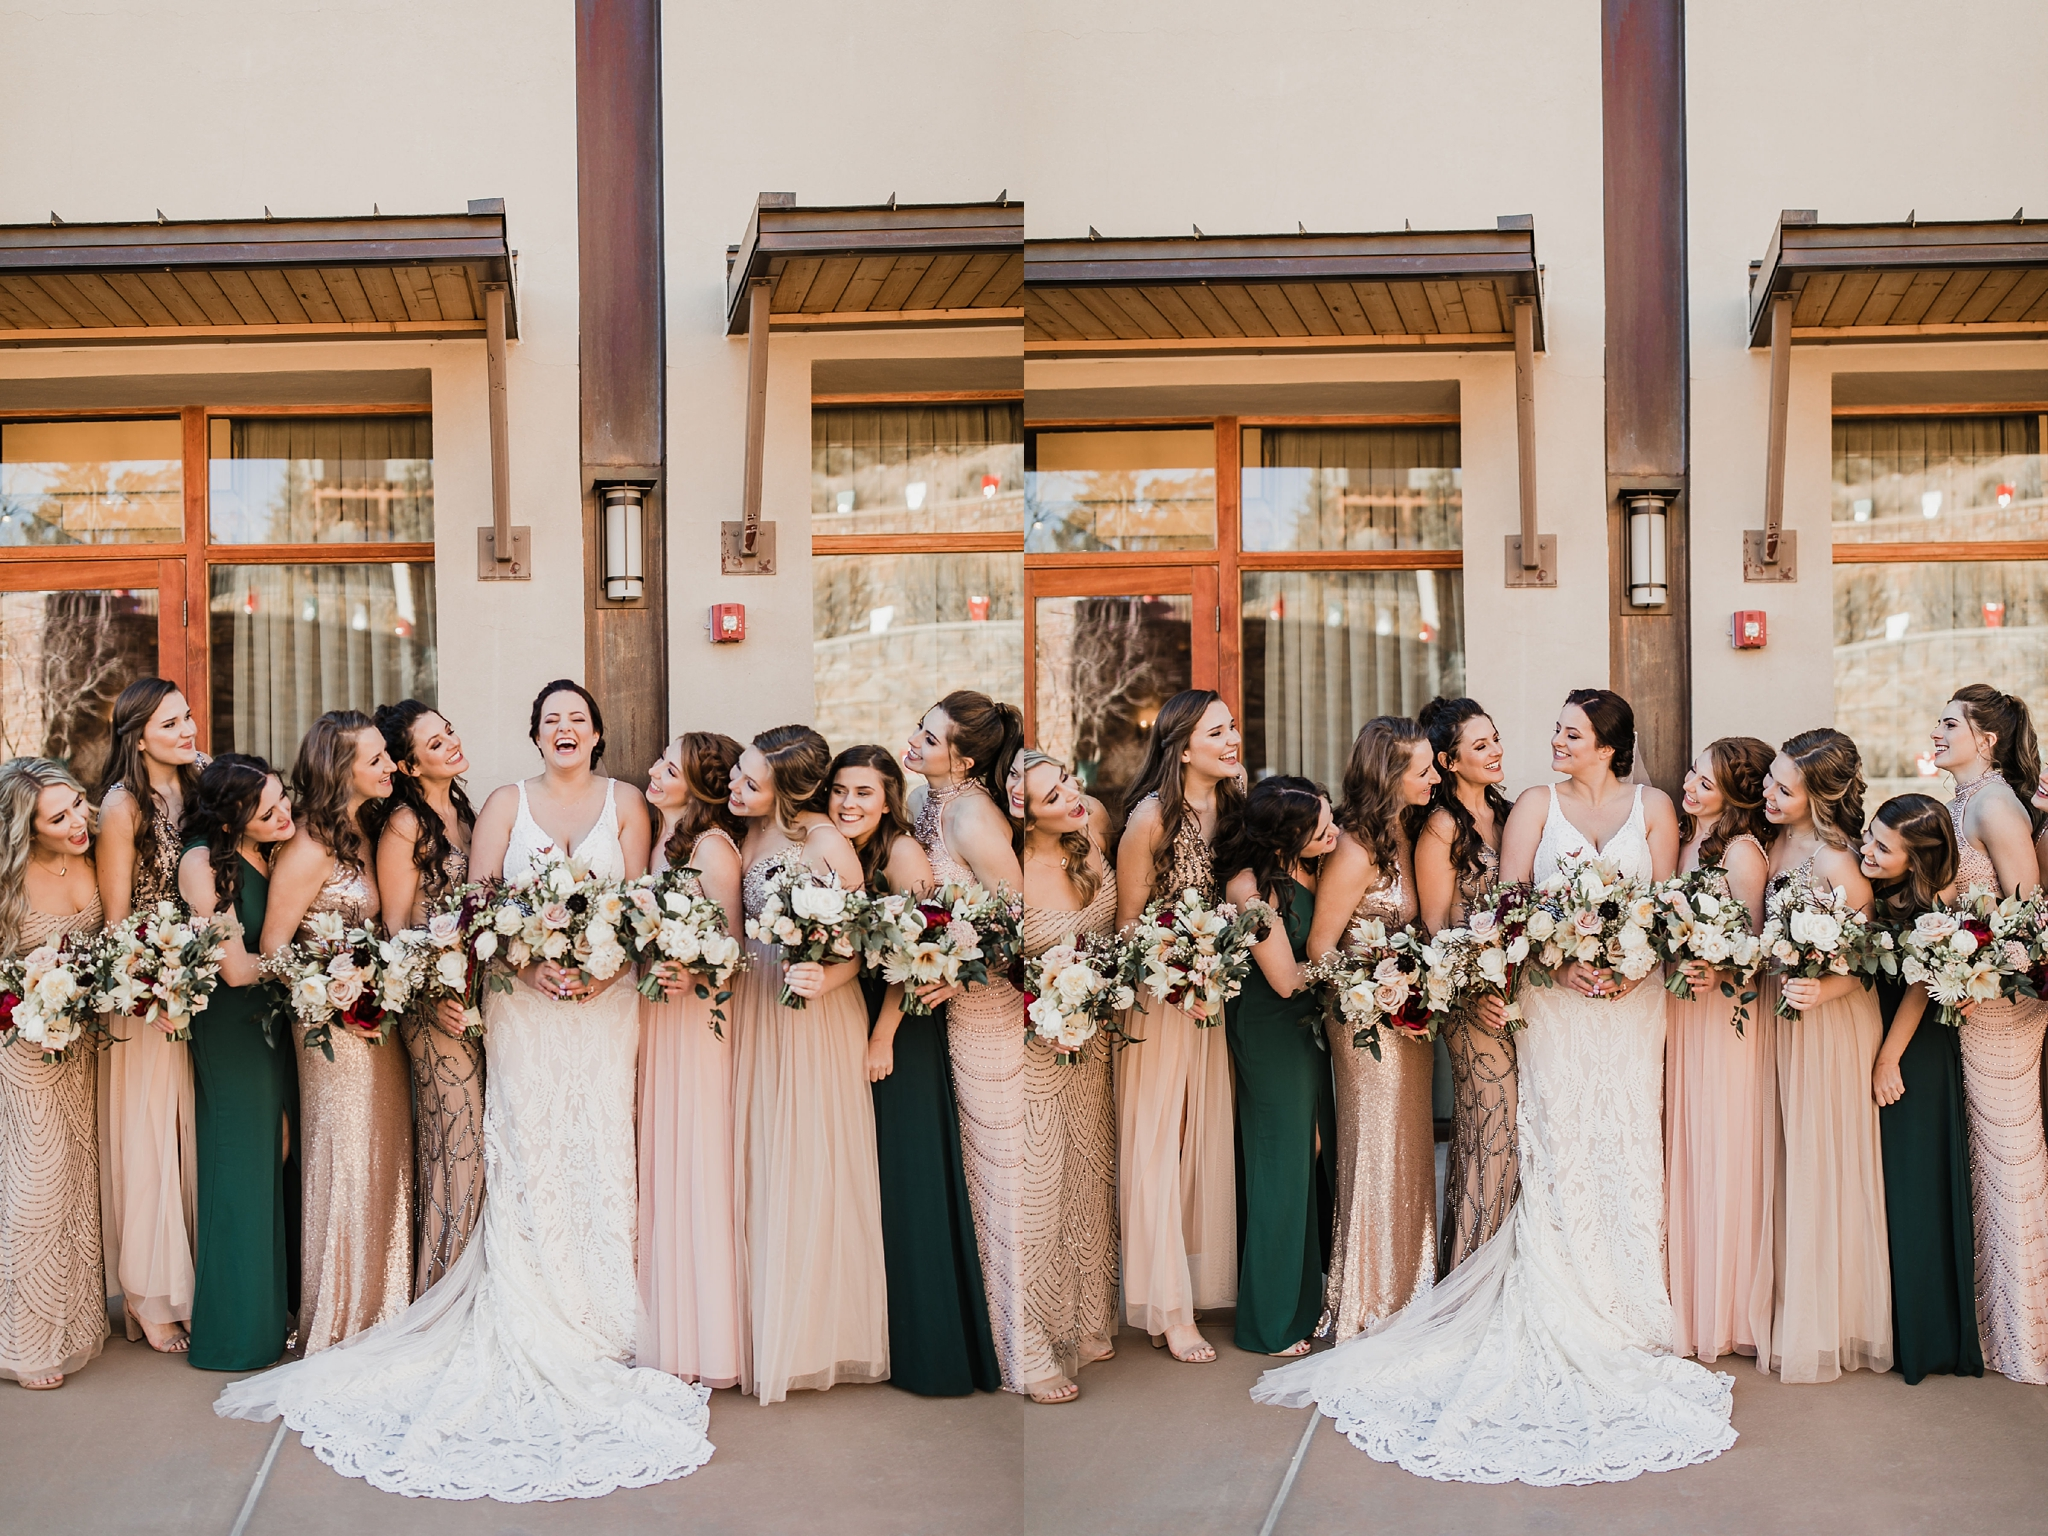 Alicia+lucia+photography+-+albuquerque+wedding+photographer+-+santa+fe+wedding+photography+-+new+mexico+wedding+photographer+-+new+mexico+wedding+-+santa+fe+wedding+-+four+seasons+wedding+-+winter+wedding_0072.jpg